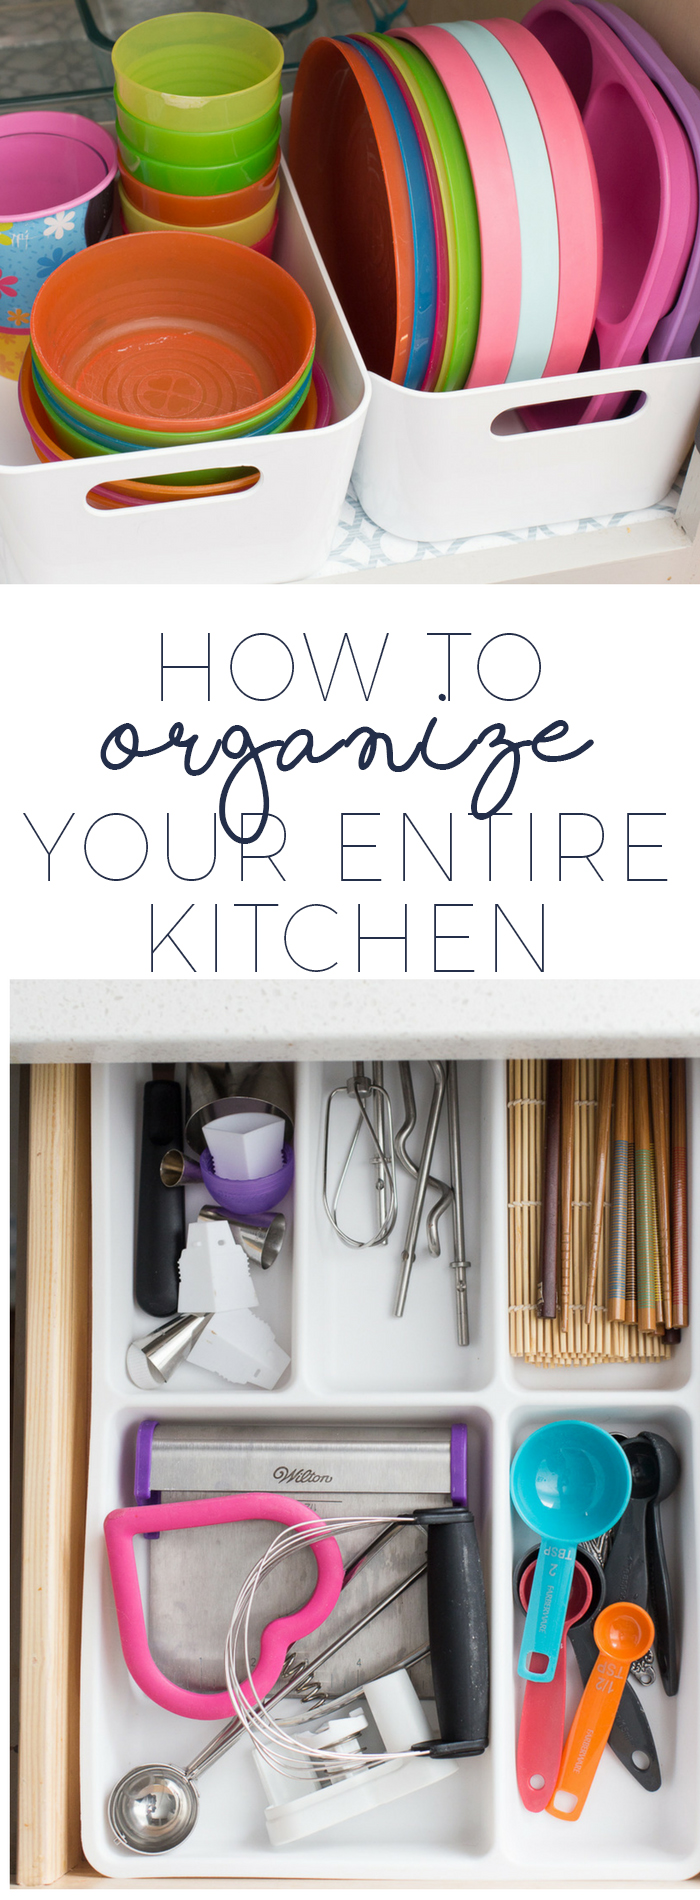 How to organize your entire kitchen. These tips are so helpful to finally tackling the mess that lurks behind the kitchen cabinets.